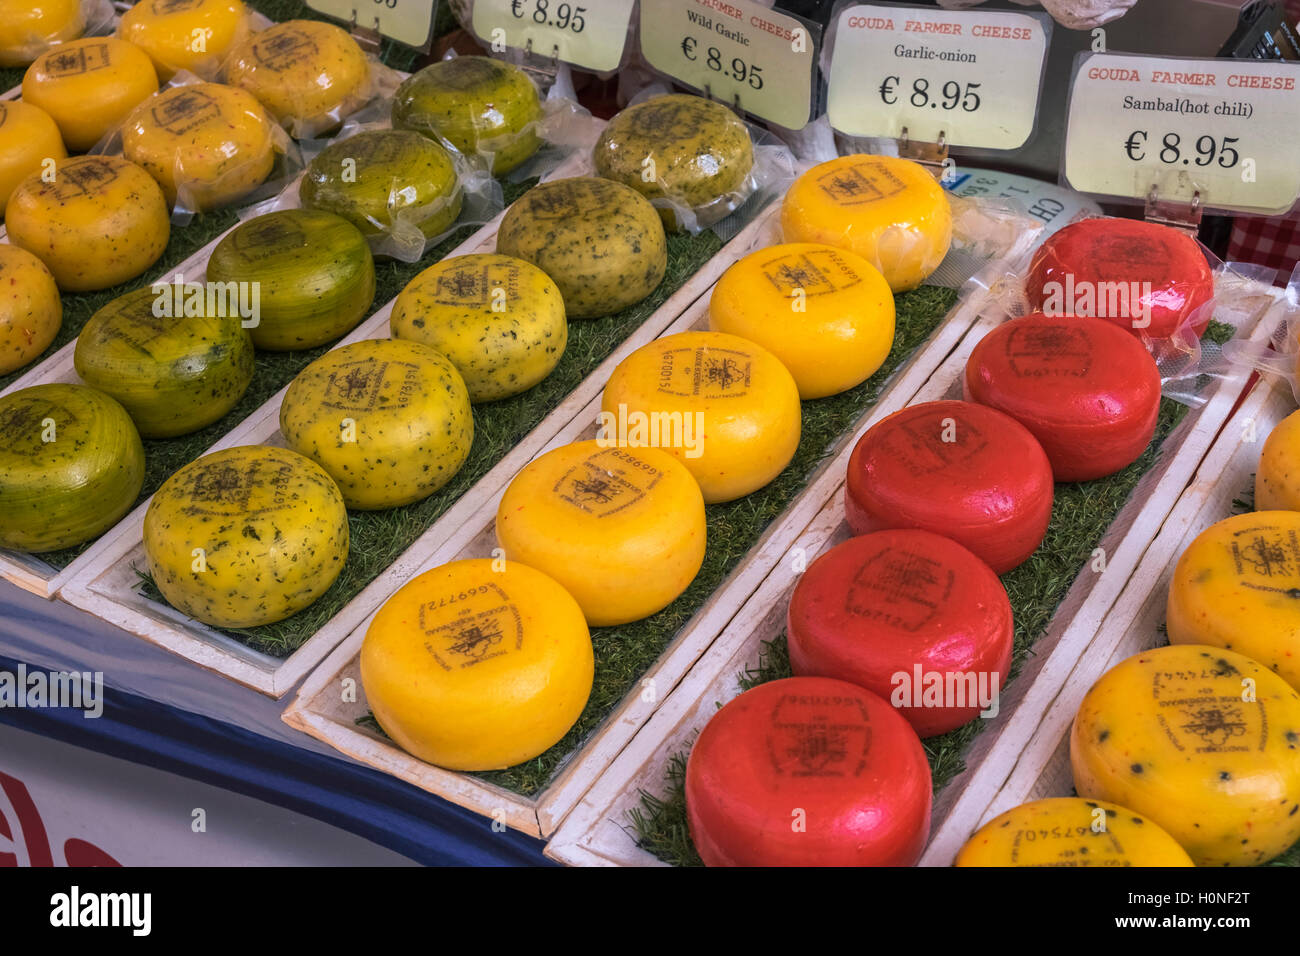 Colourful Dutch Gouda cheese displayed on a market stall, Waterloopleinmarkt, Amsterdam, Netherlands - Stock Image